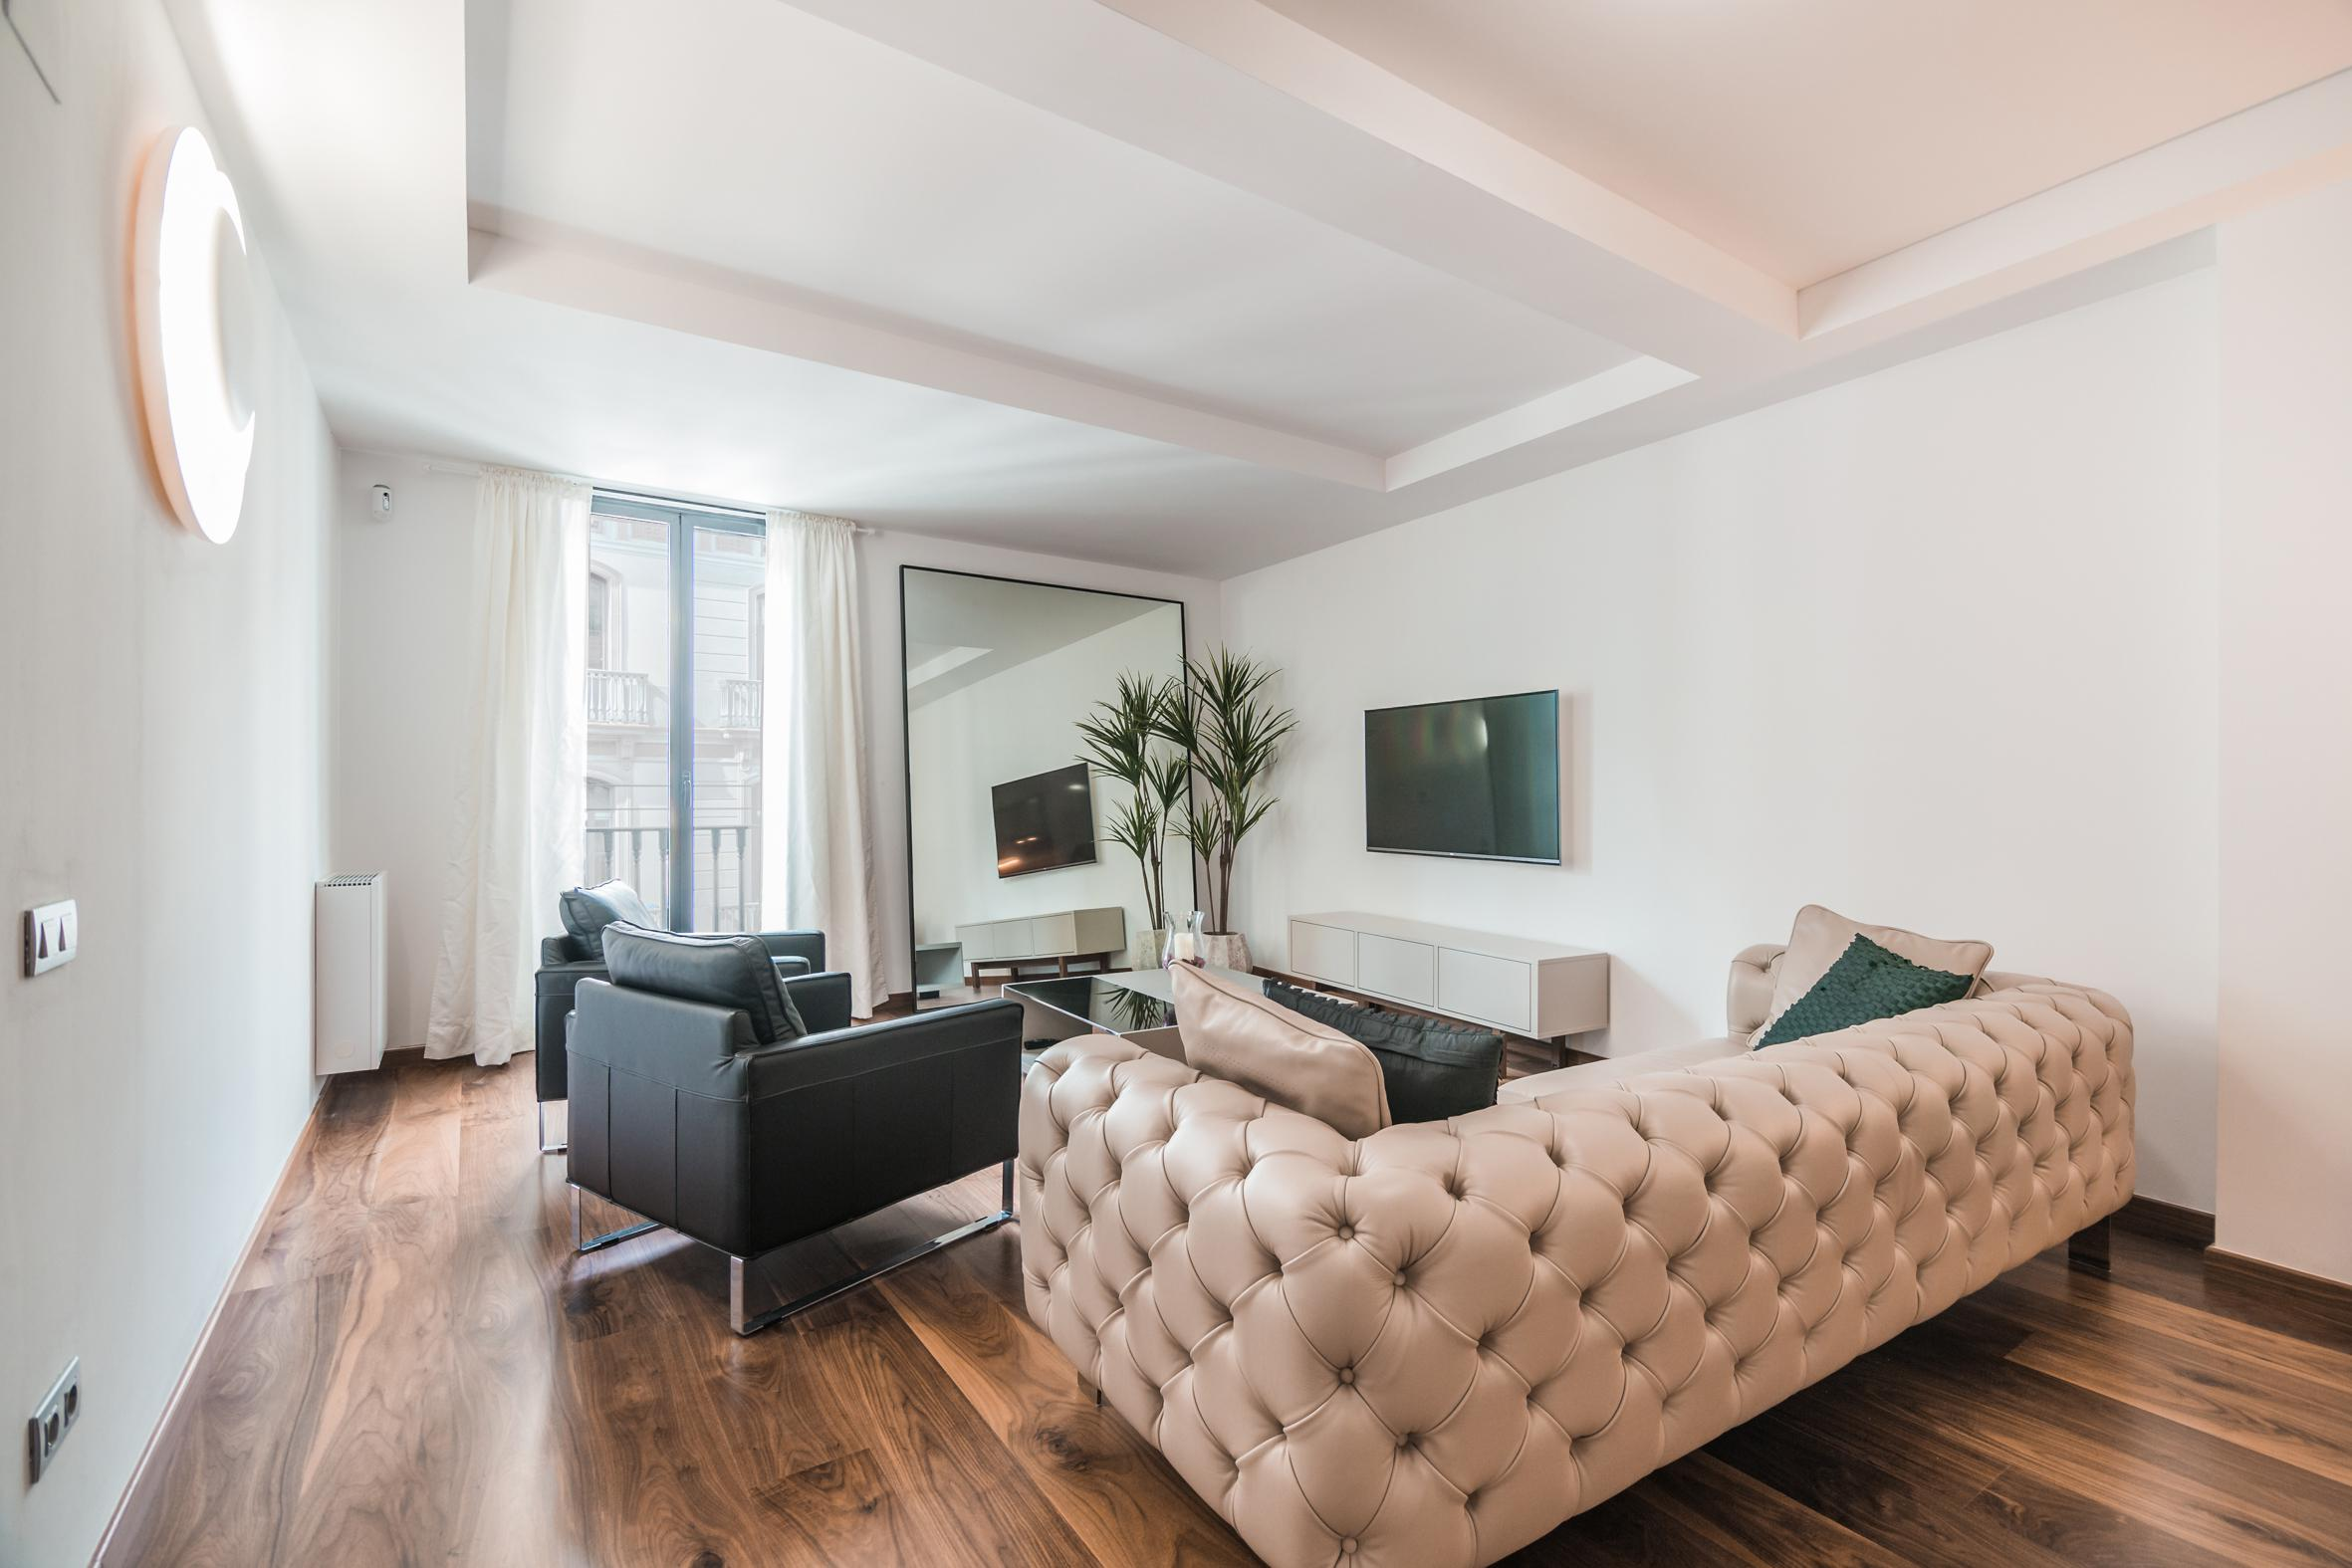 194056 Flat for sale in Ciutat Vella, Barri Gótic 25